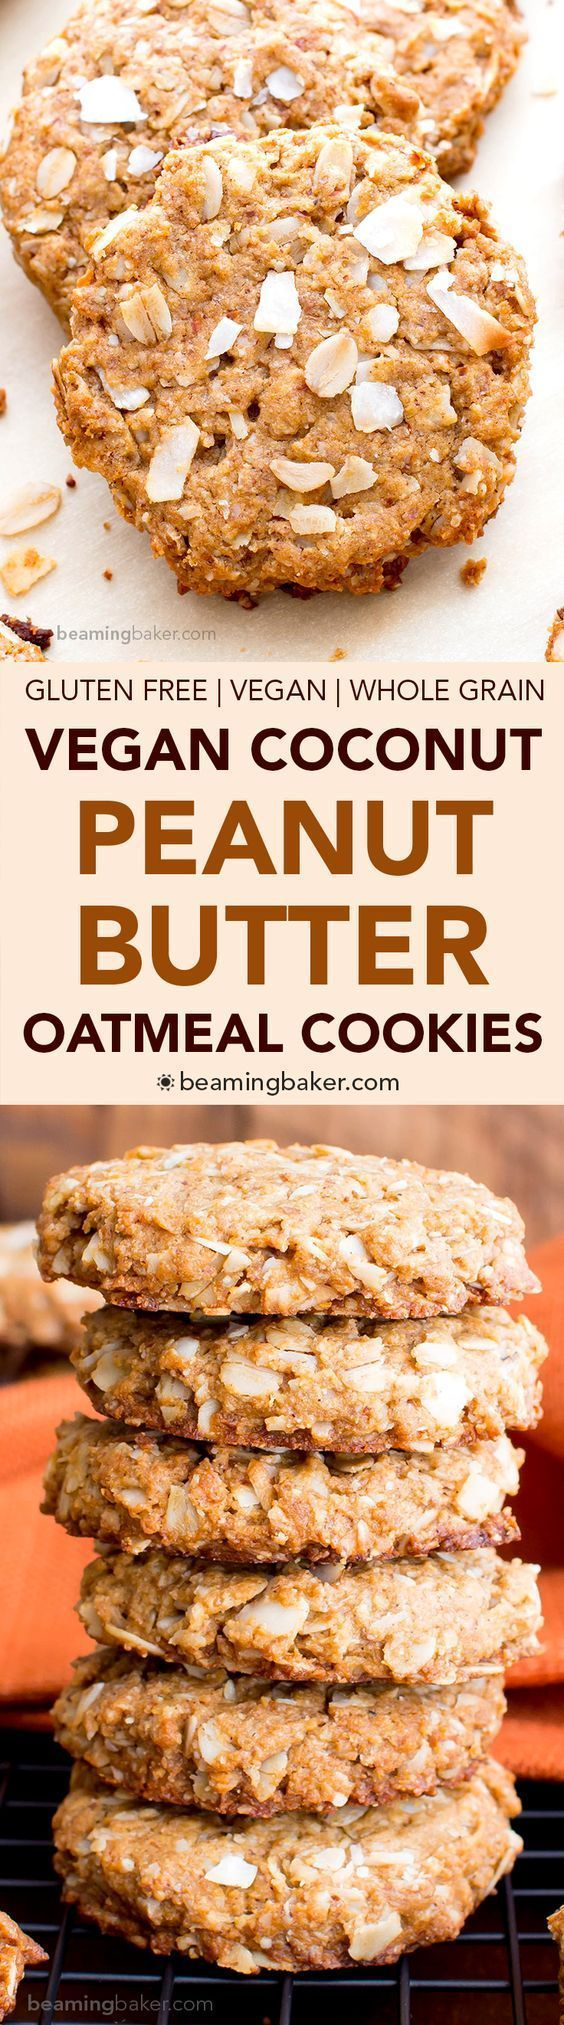 Peanut Butter Coconut Oatmeal Cookies (V, GF): an easy recipe for deliciously thick, chewy peanut butter cookies bursting with coconut and oats. #Vegan #GlutenFree #WholeGrain #OatFlour #DairyFree | http://BeamingBaker.com